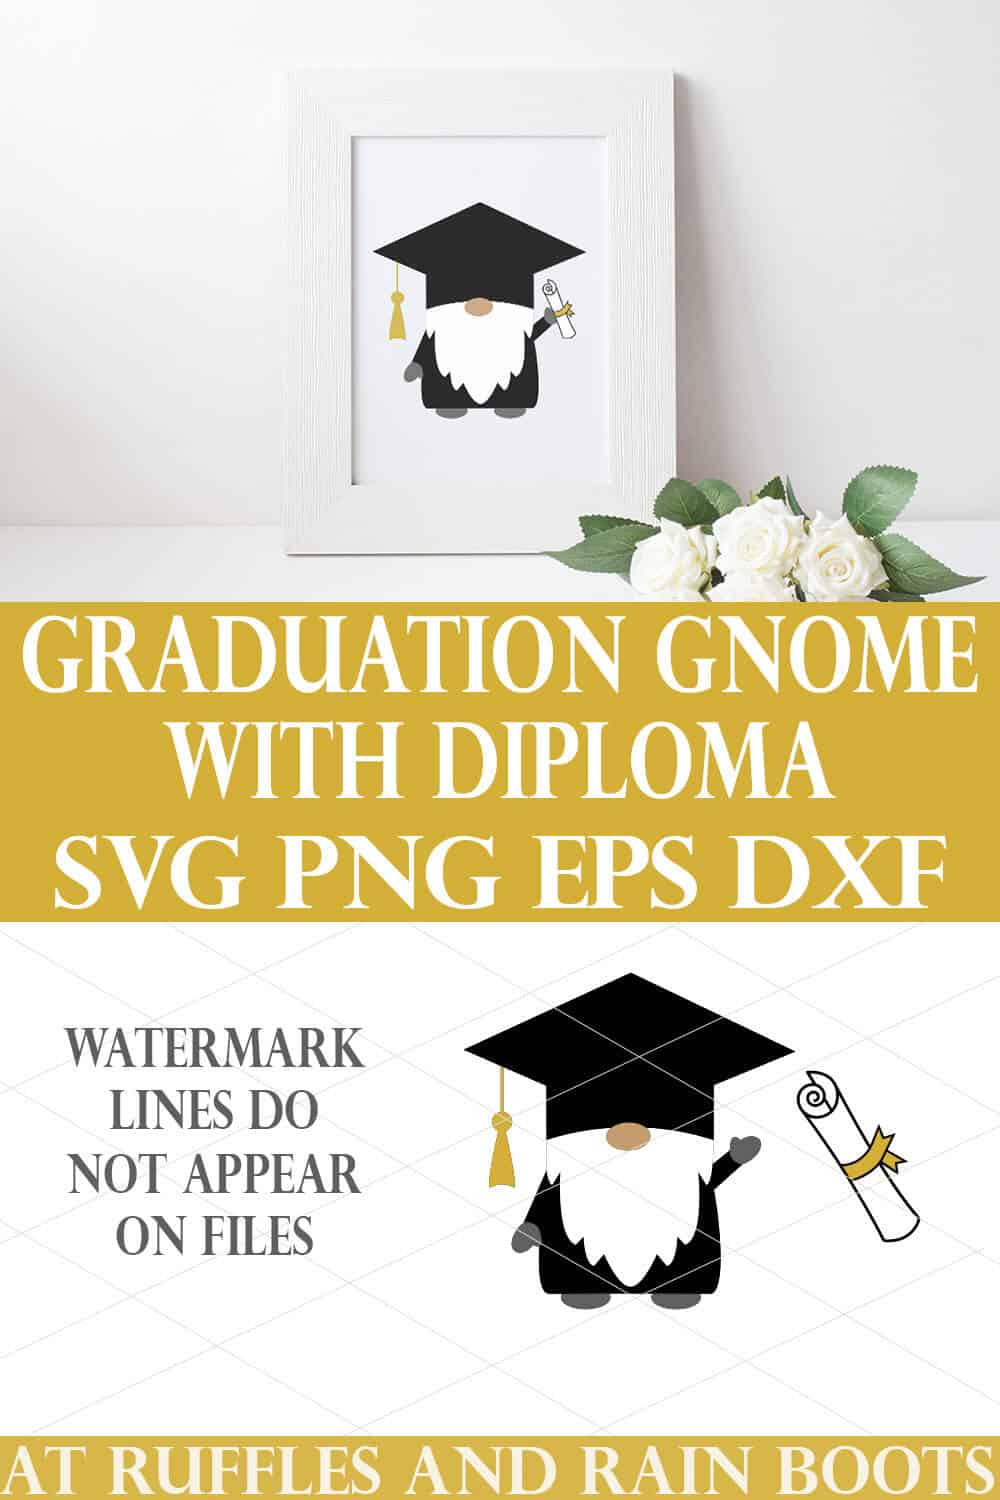 vertical collage of graduation gnome SVG in white frame holding a diploma